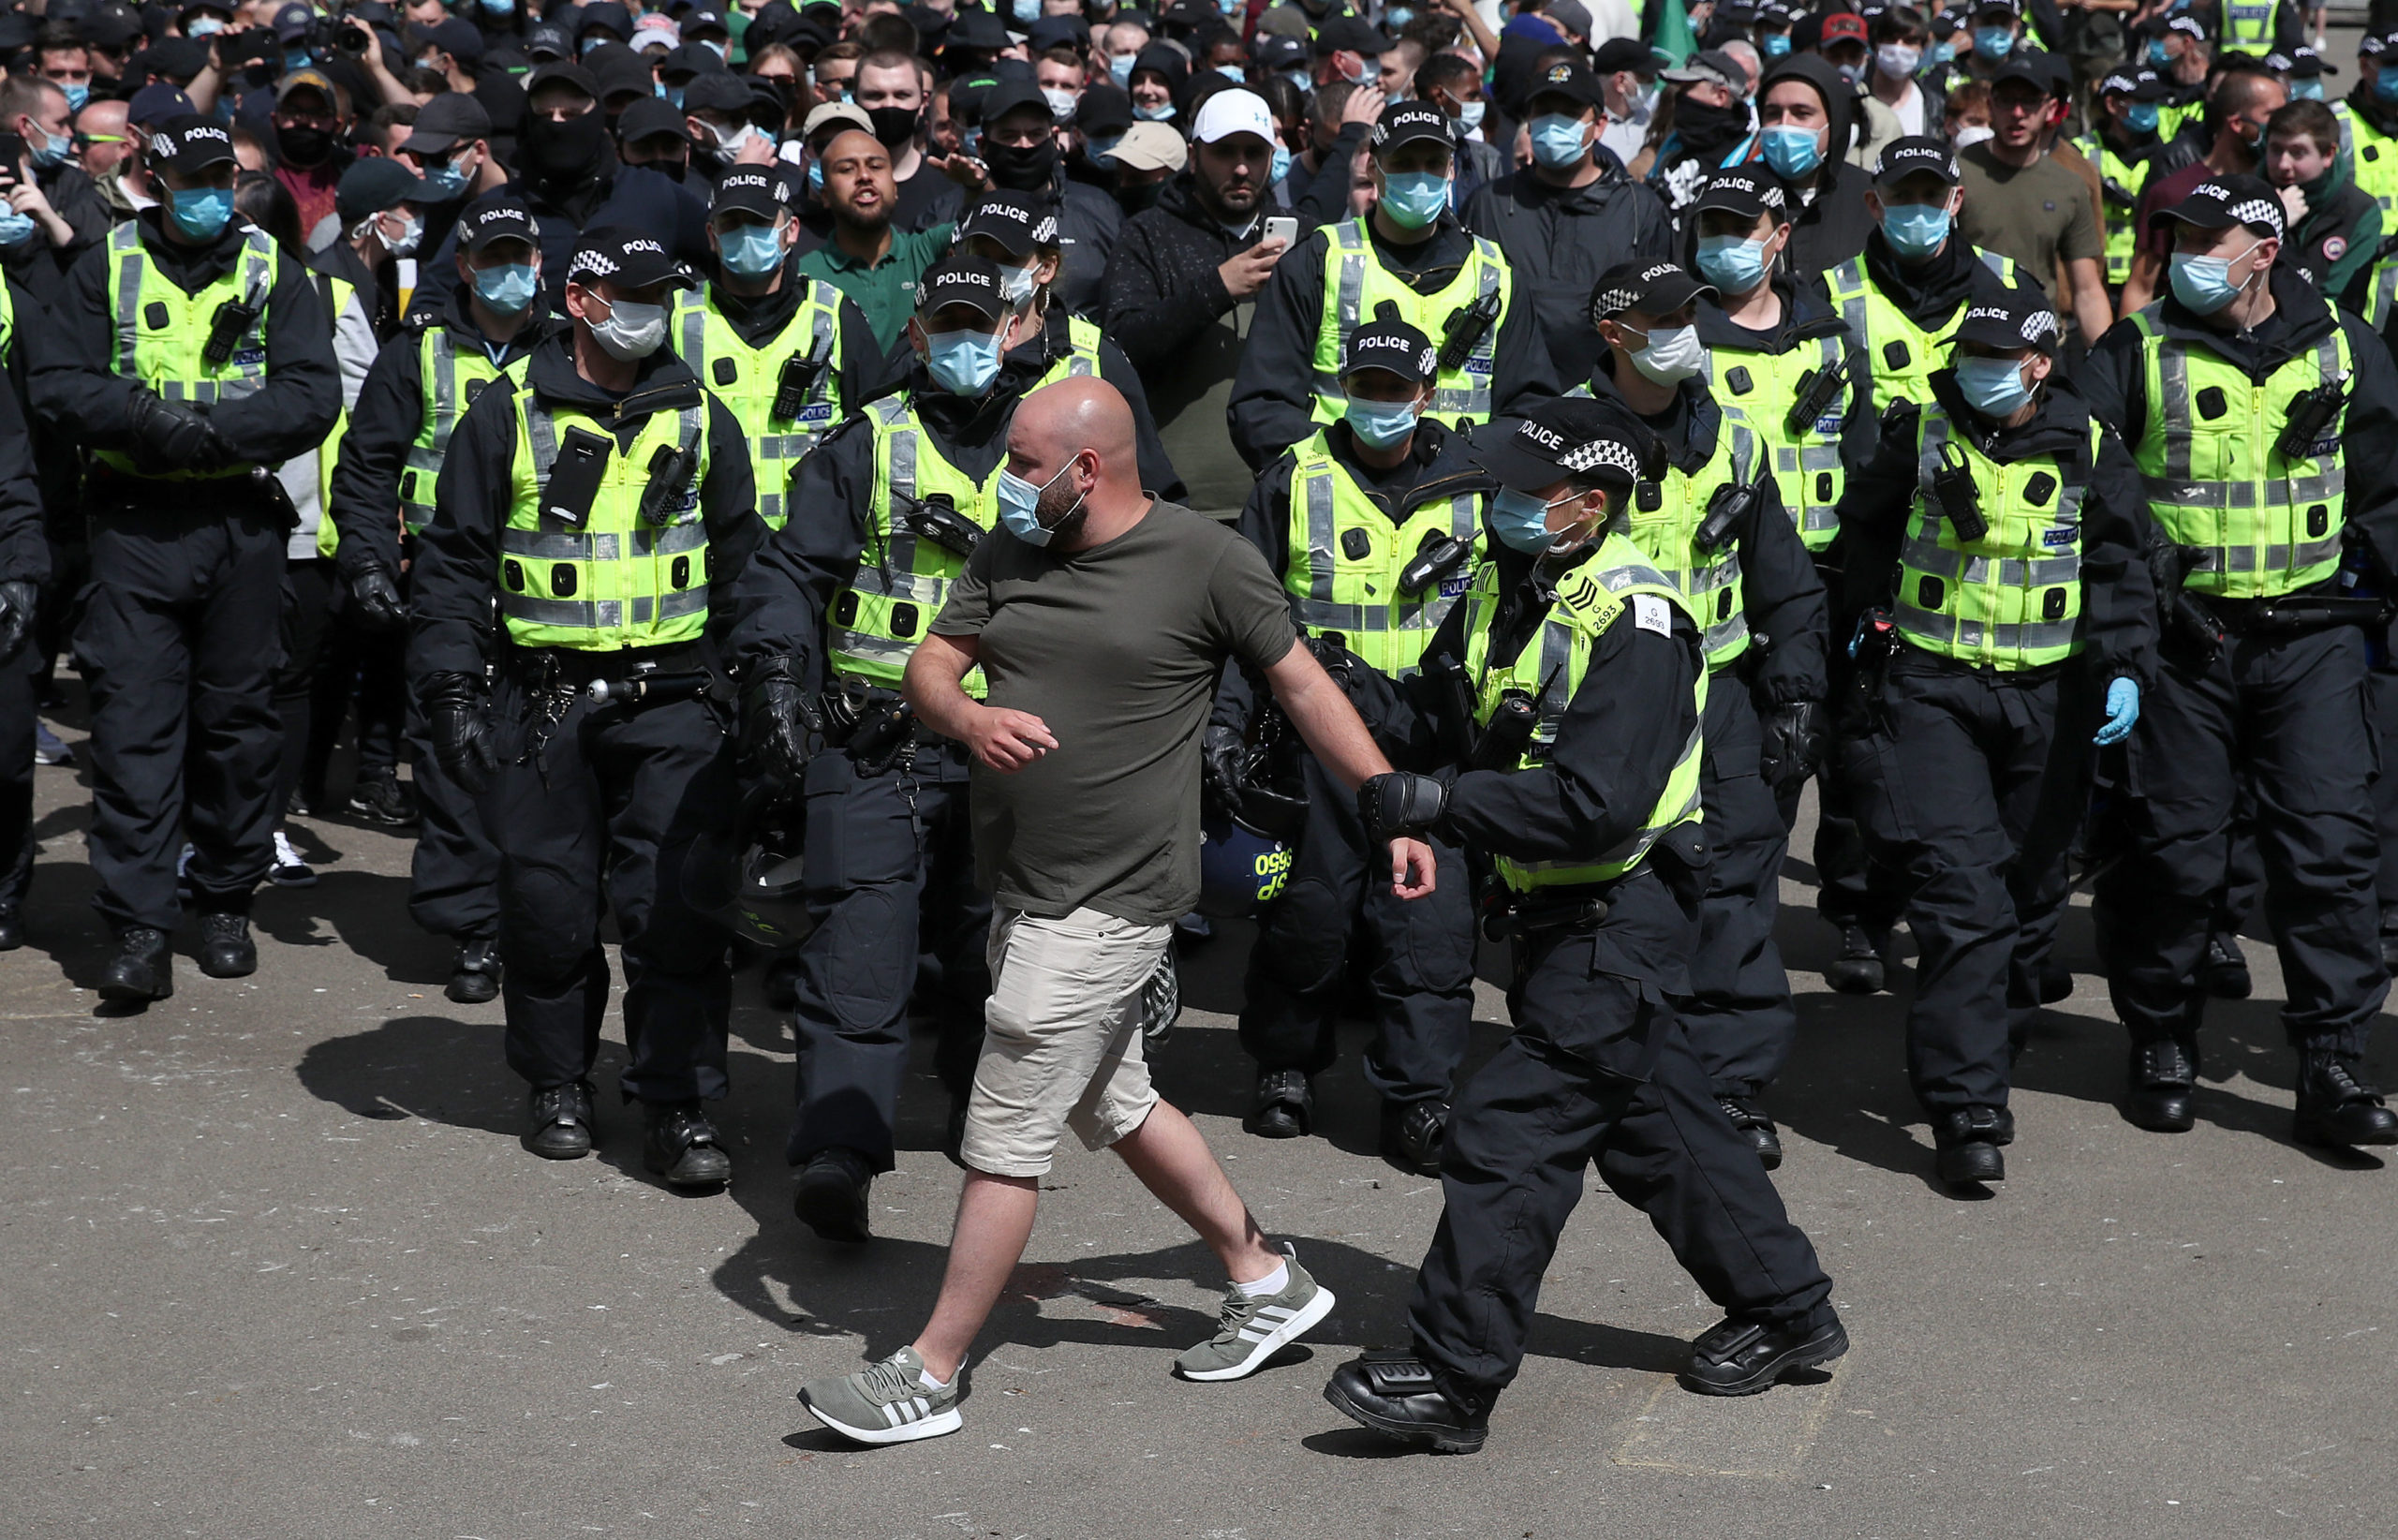 Protesters are escorted by police from George Square in Glasgow city centre.